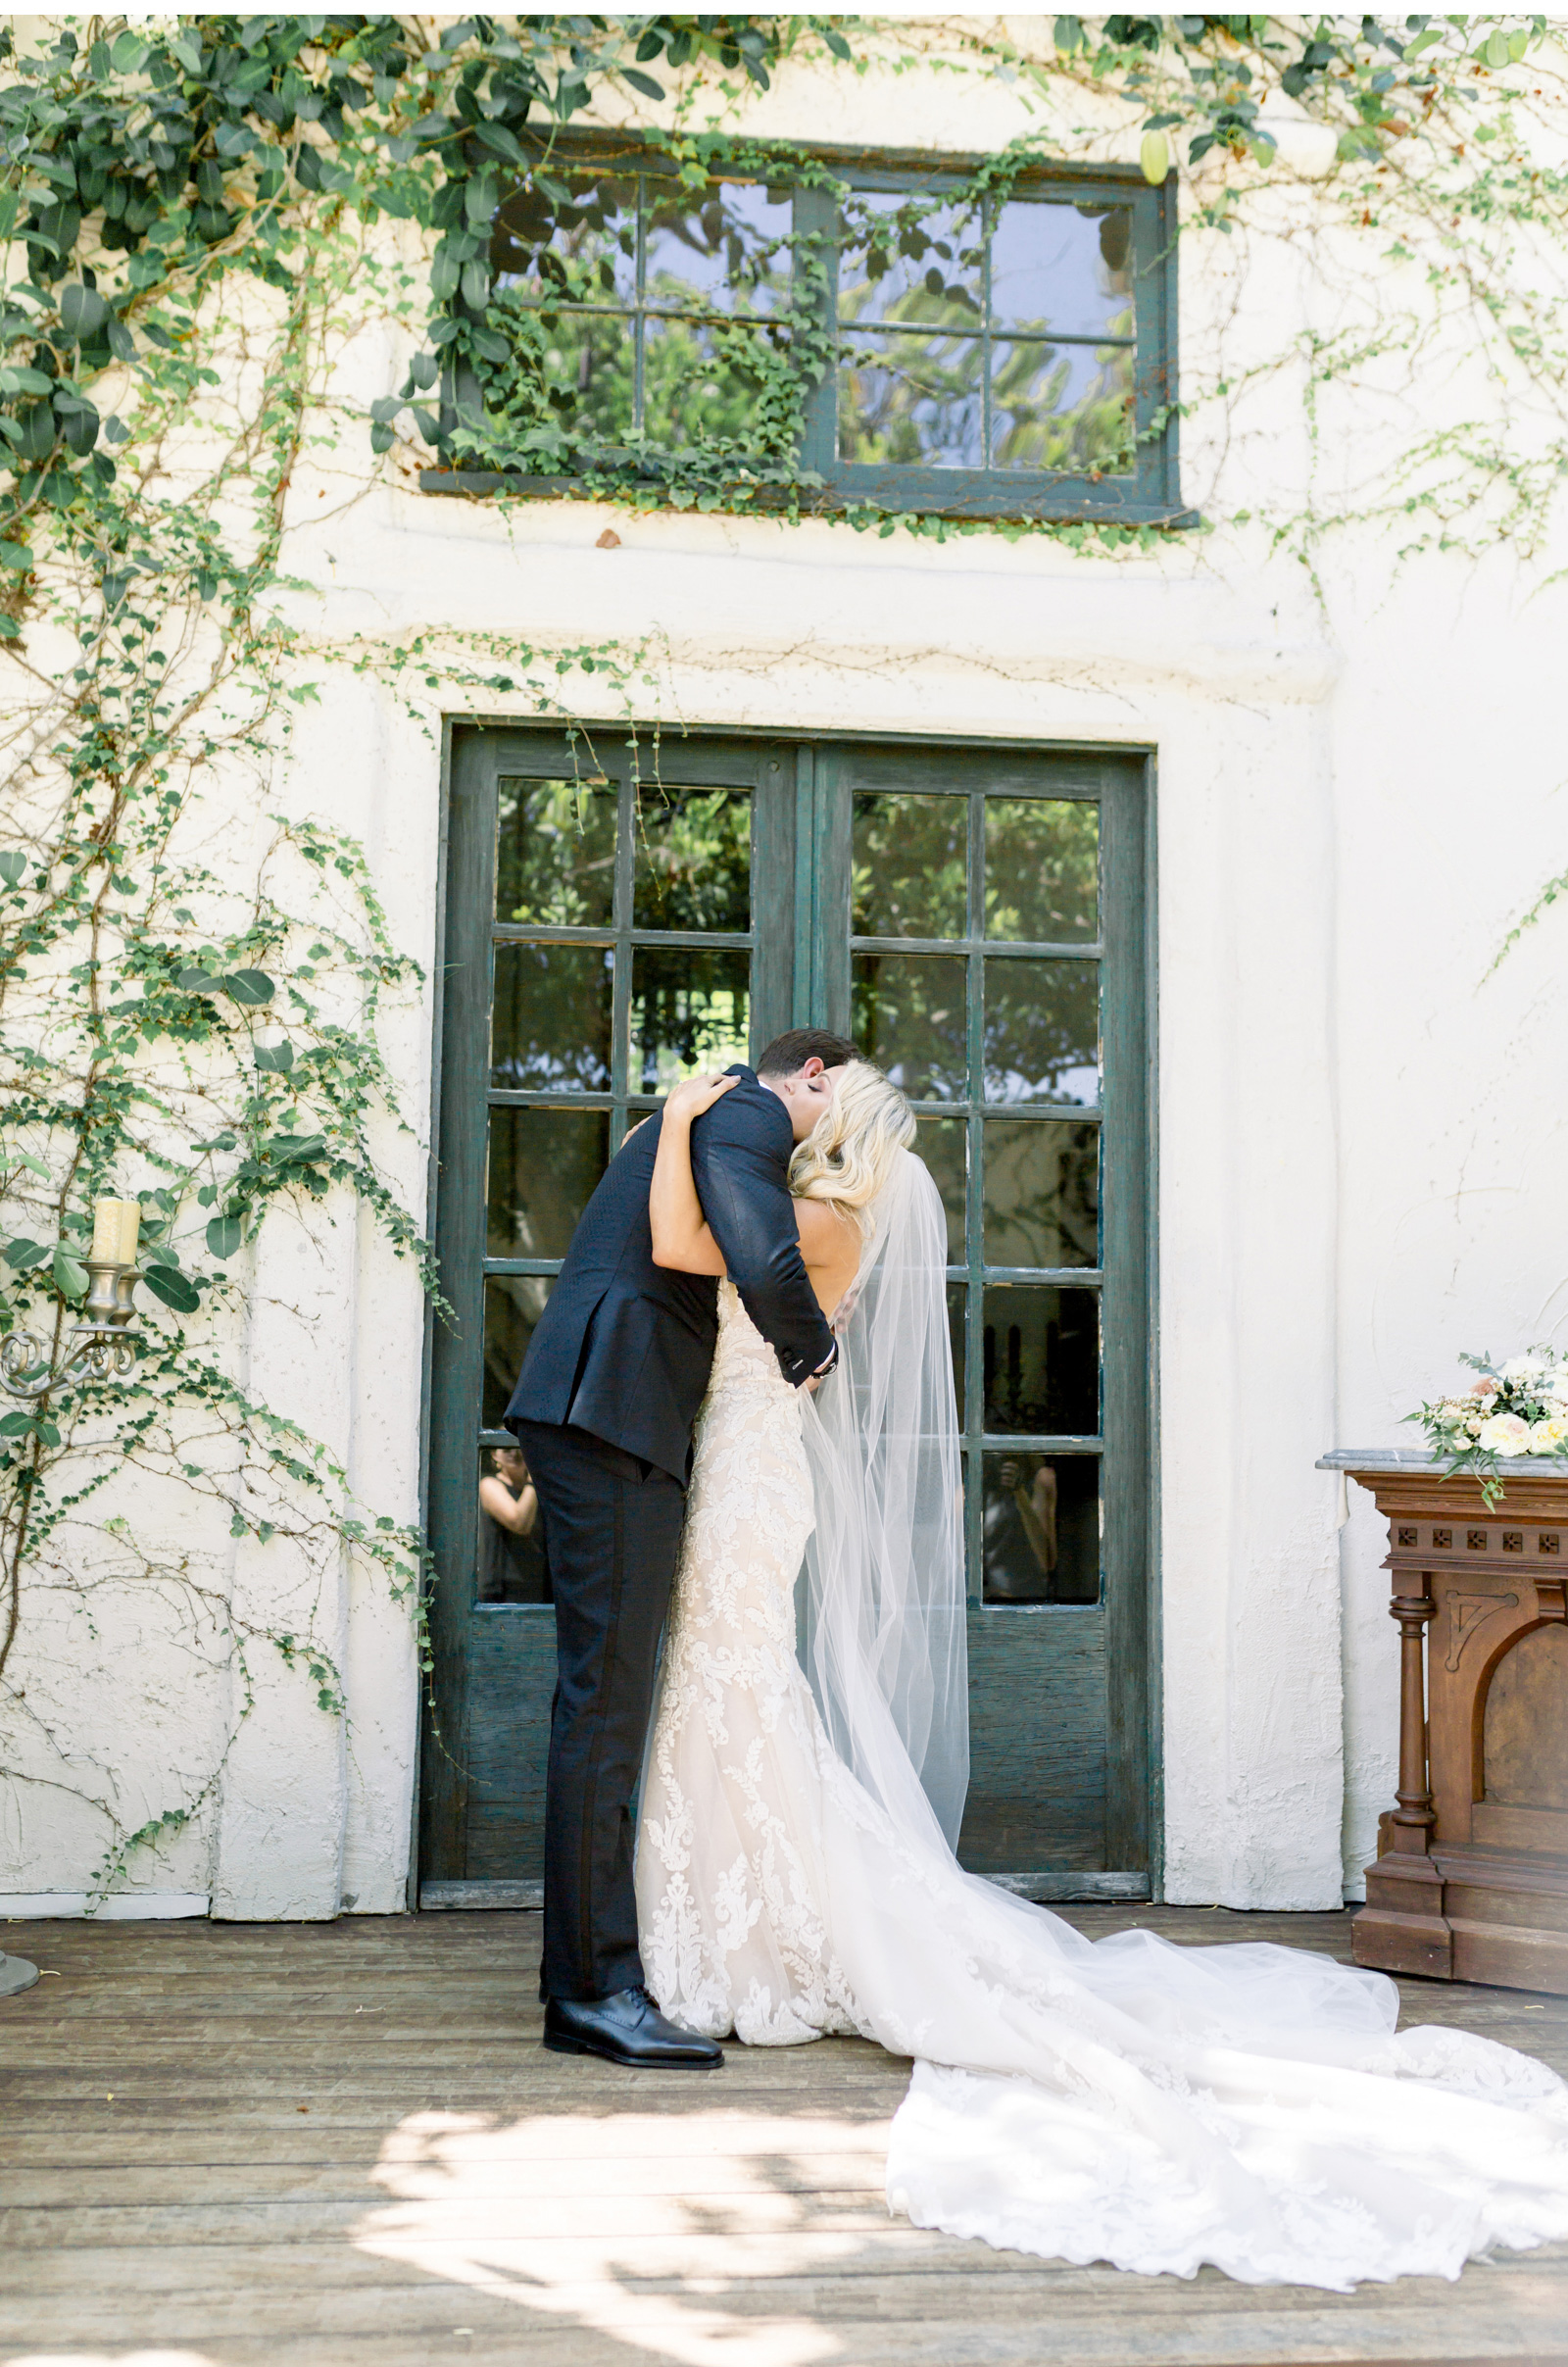 San-Juan-Capistrano-Wedding-Photographer-Malibu-Weddings-Malibu-Wedding-Venues-Natalie-Schutt-Photographer_02.jpg